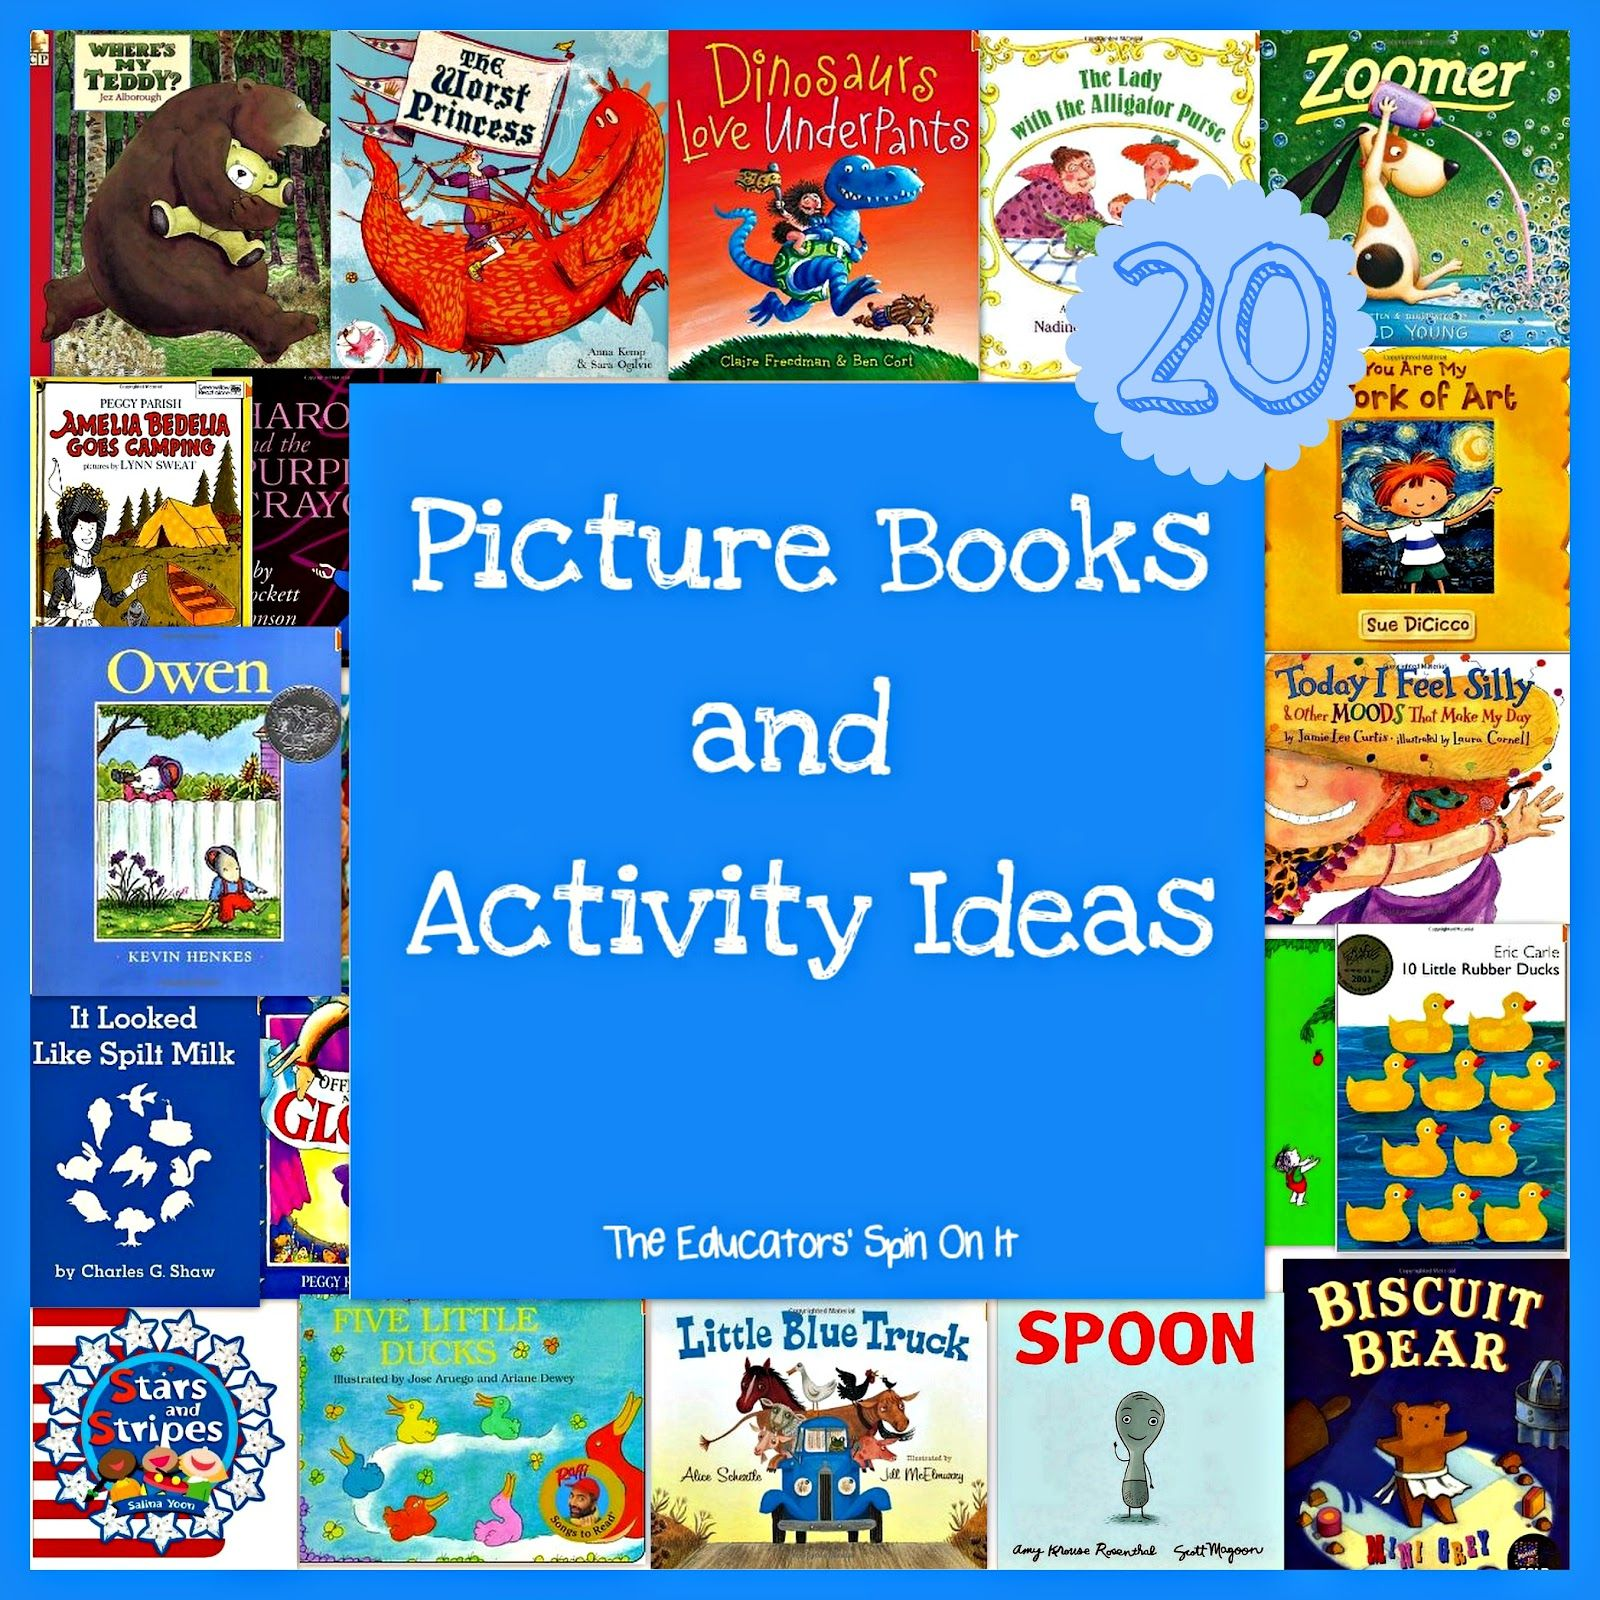 The Educators' Spin On It: 20 Picture Books and Activities Ideas for your child!